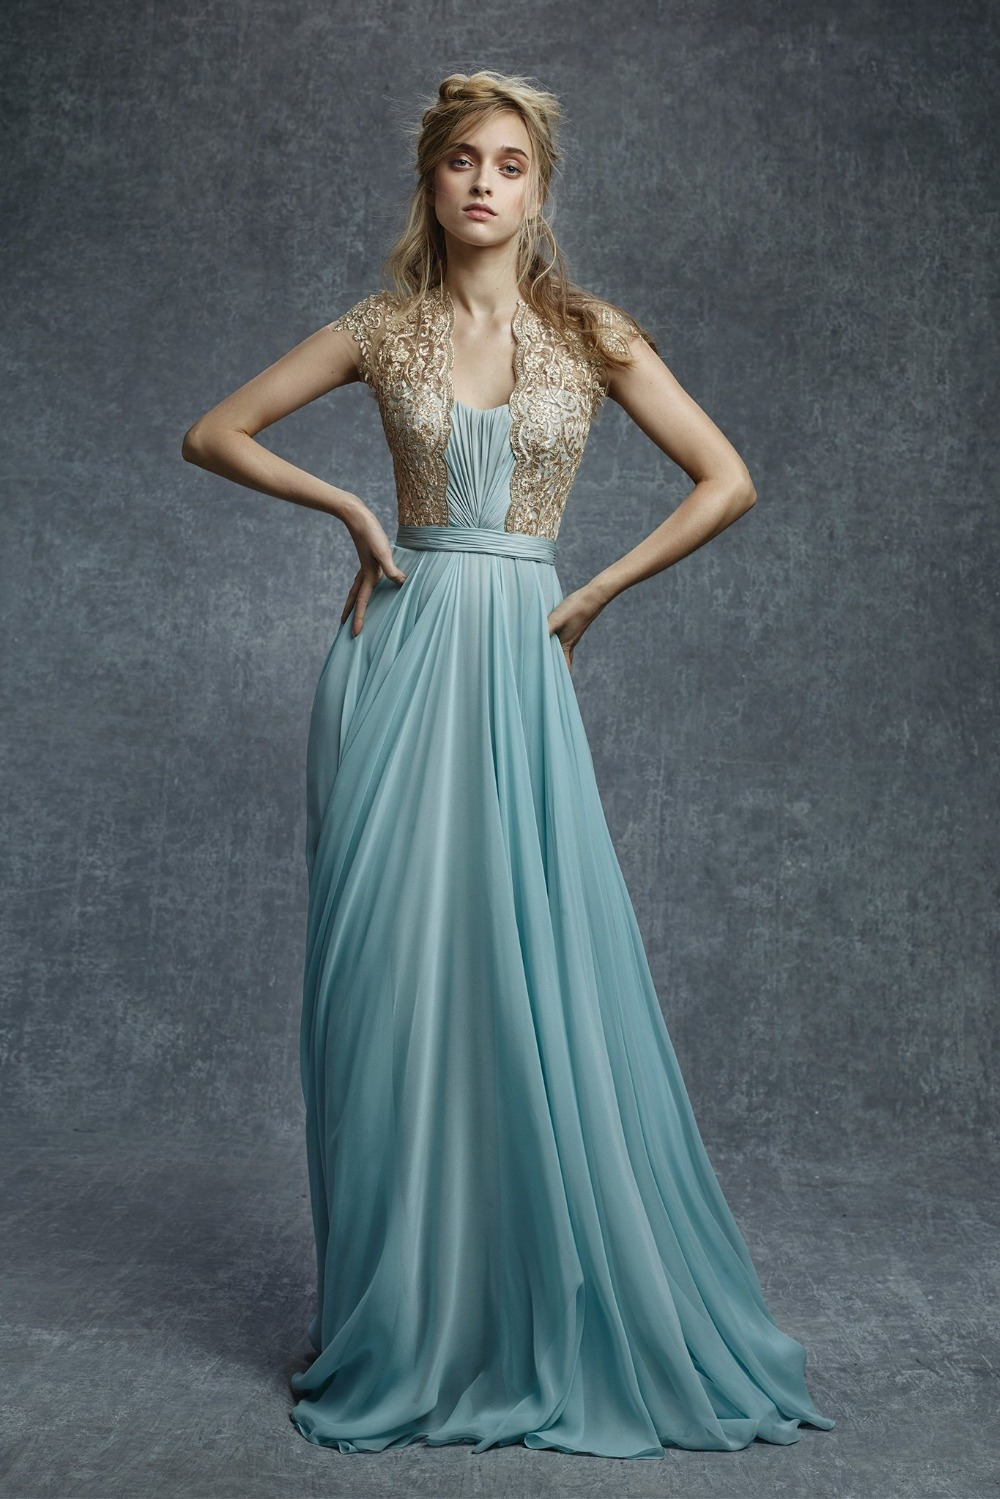 Aliexpress.com : Buy Light Blue Chiffon Evening Dresses With Gold ...